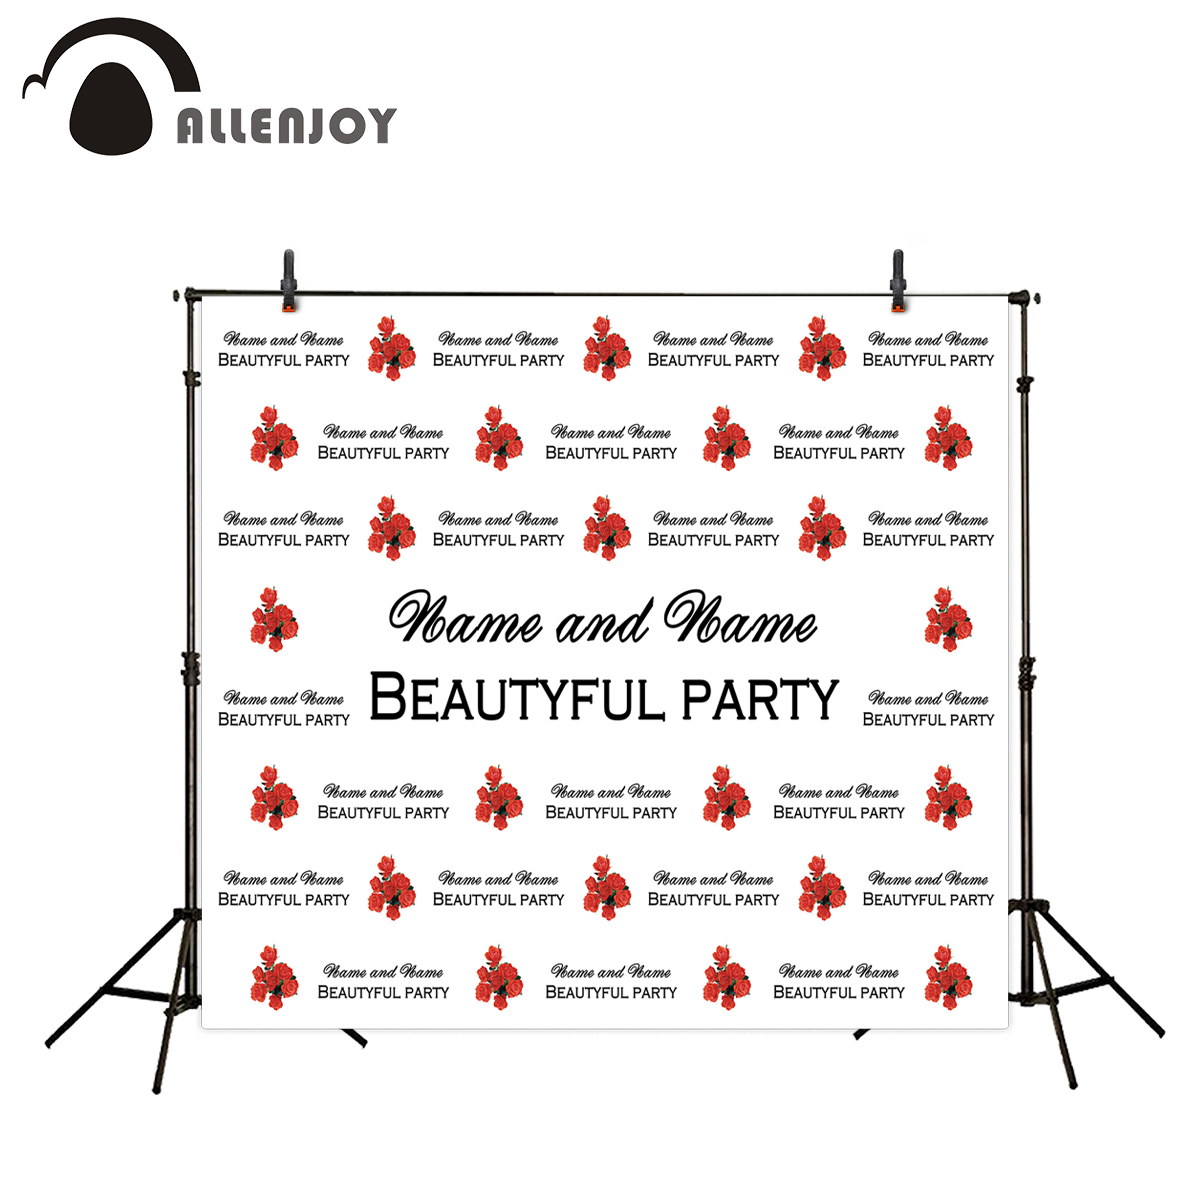 Allenjoy party backdrop Roses step and repeat wedding birthday custom photography backgrounds for wedding photo backdrop